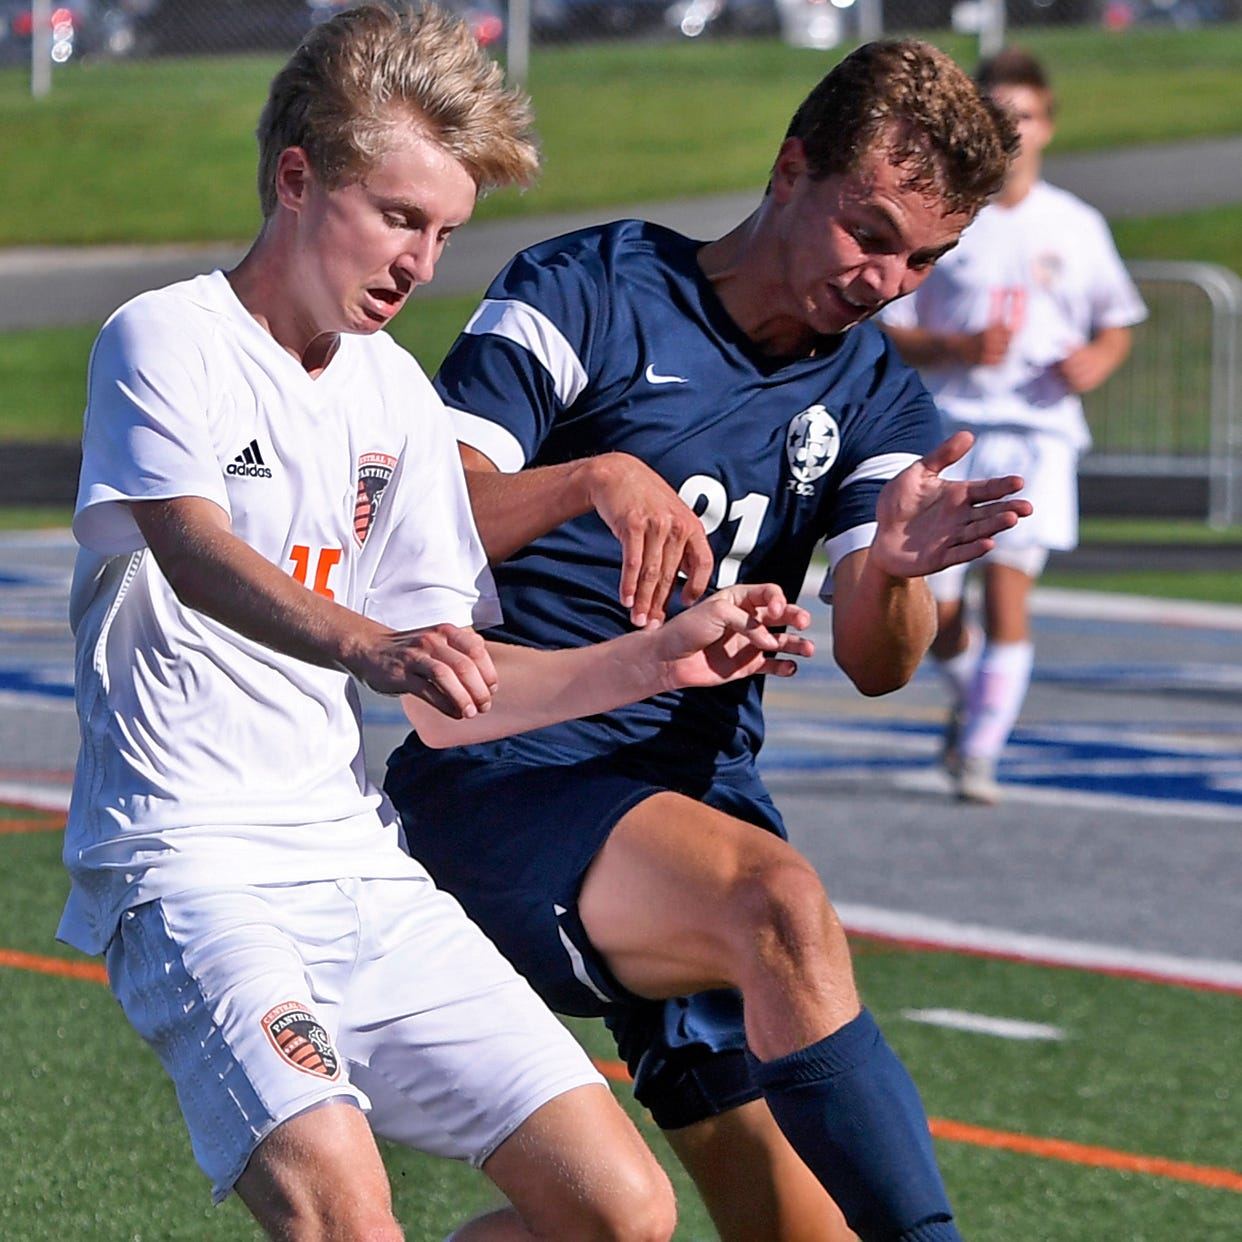 Soccer roundup, Tuesday, Sept. 18: Central York gives Dallastown first loss of 2018 season